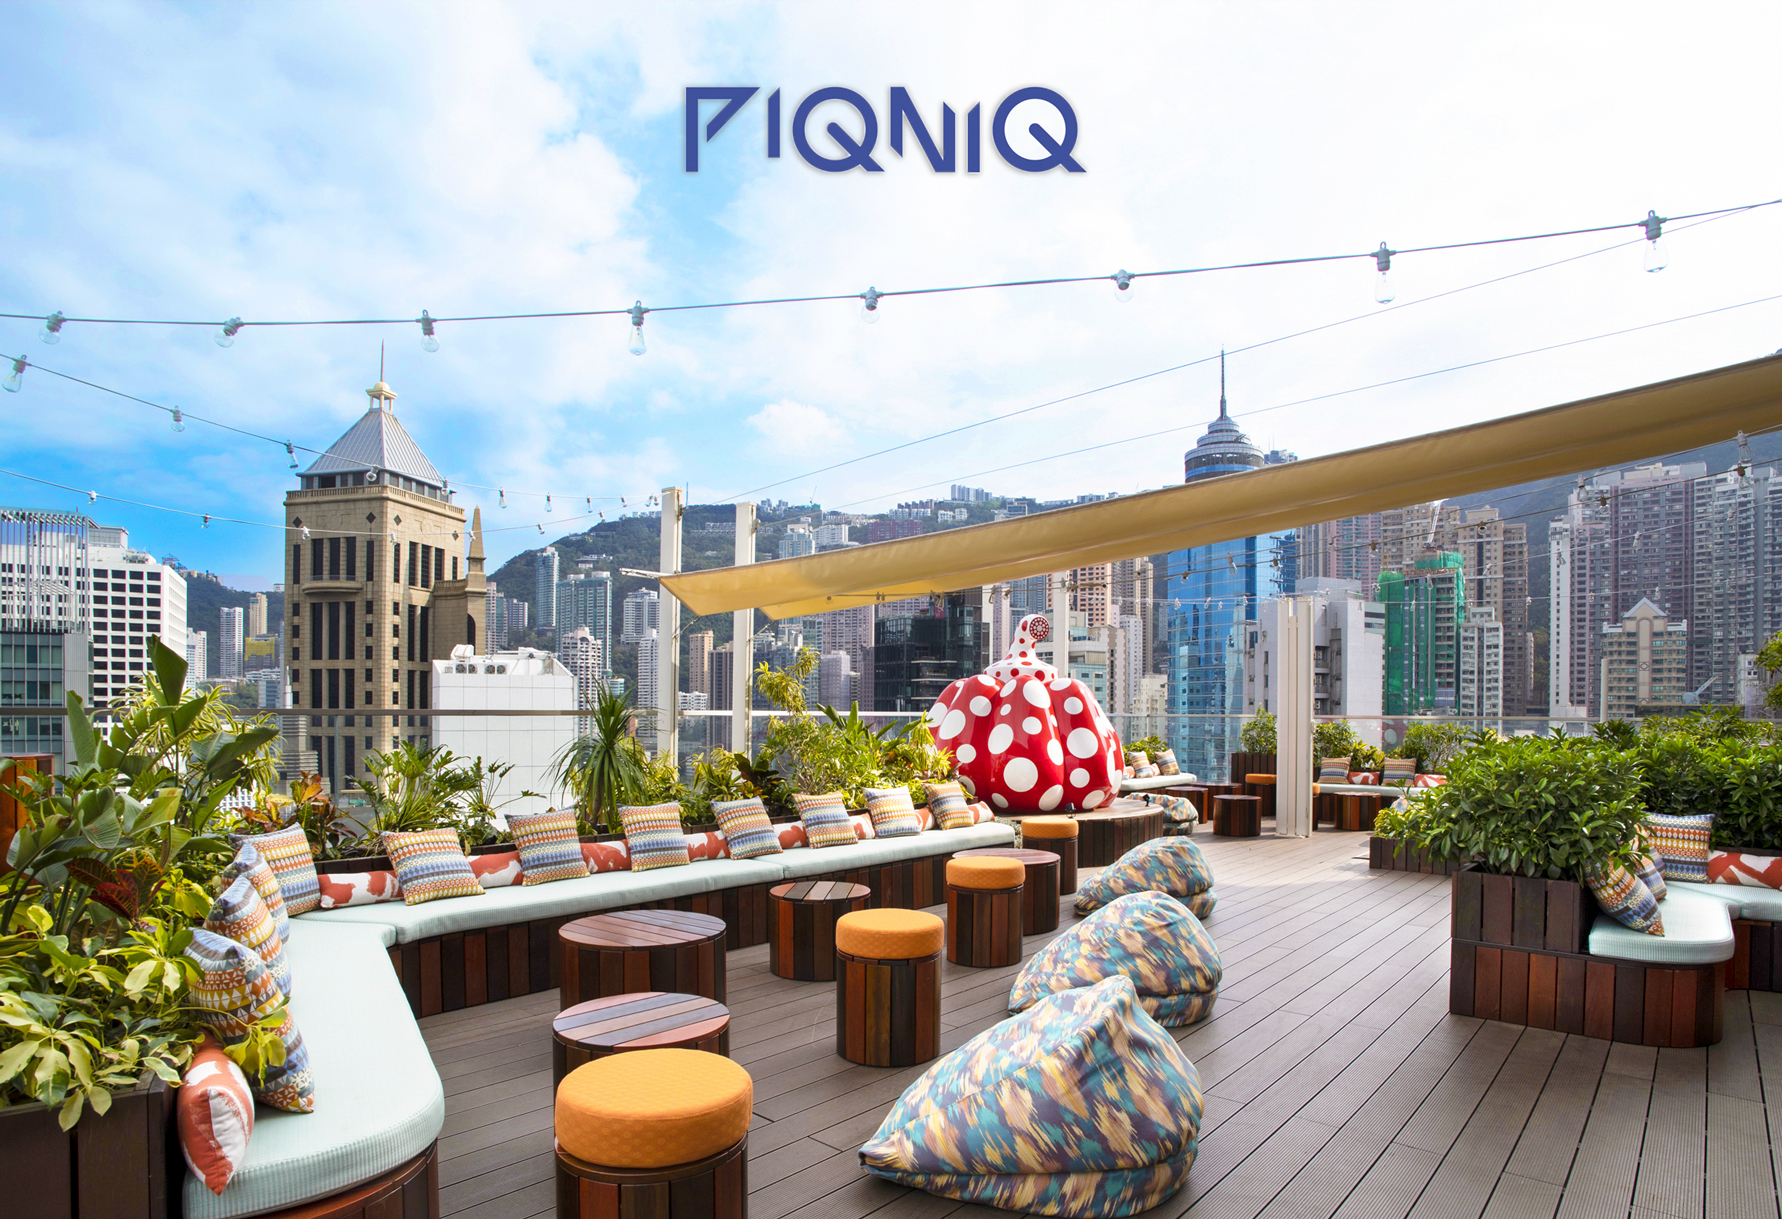 piqniq-website-logo-photo.jpg